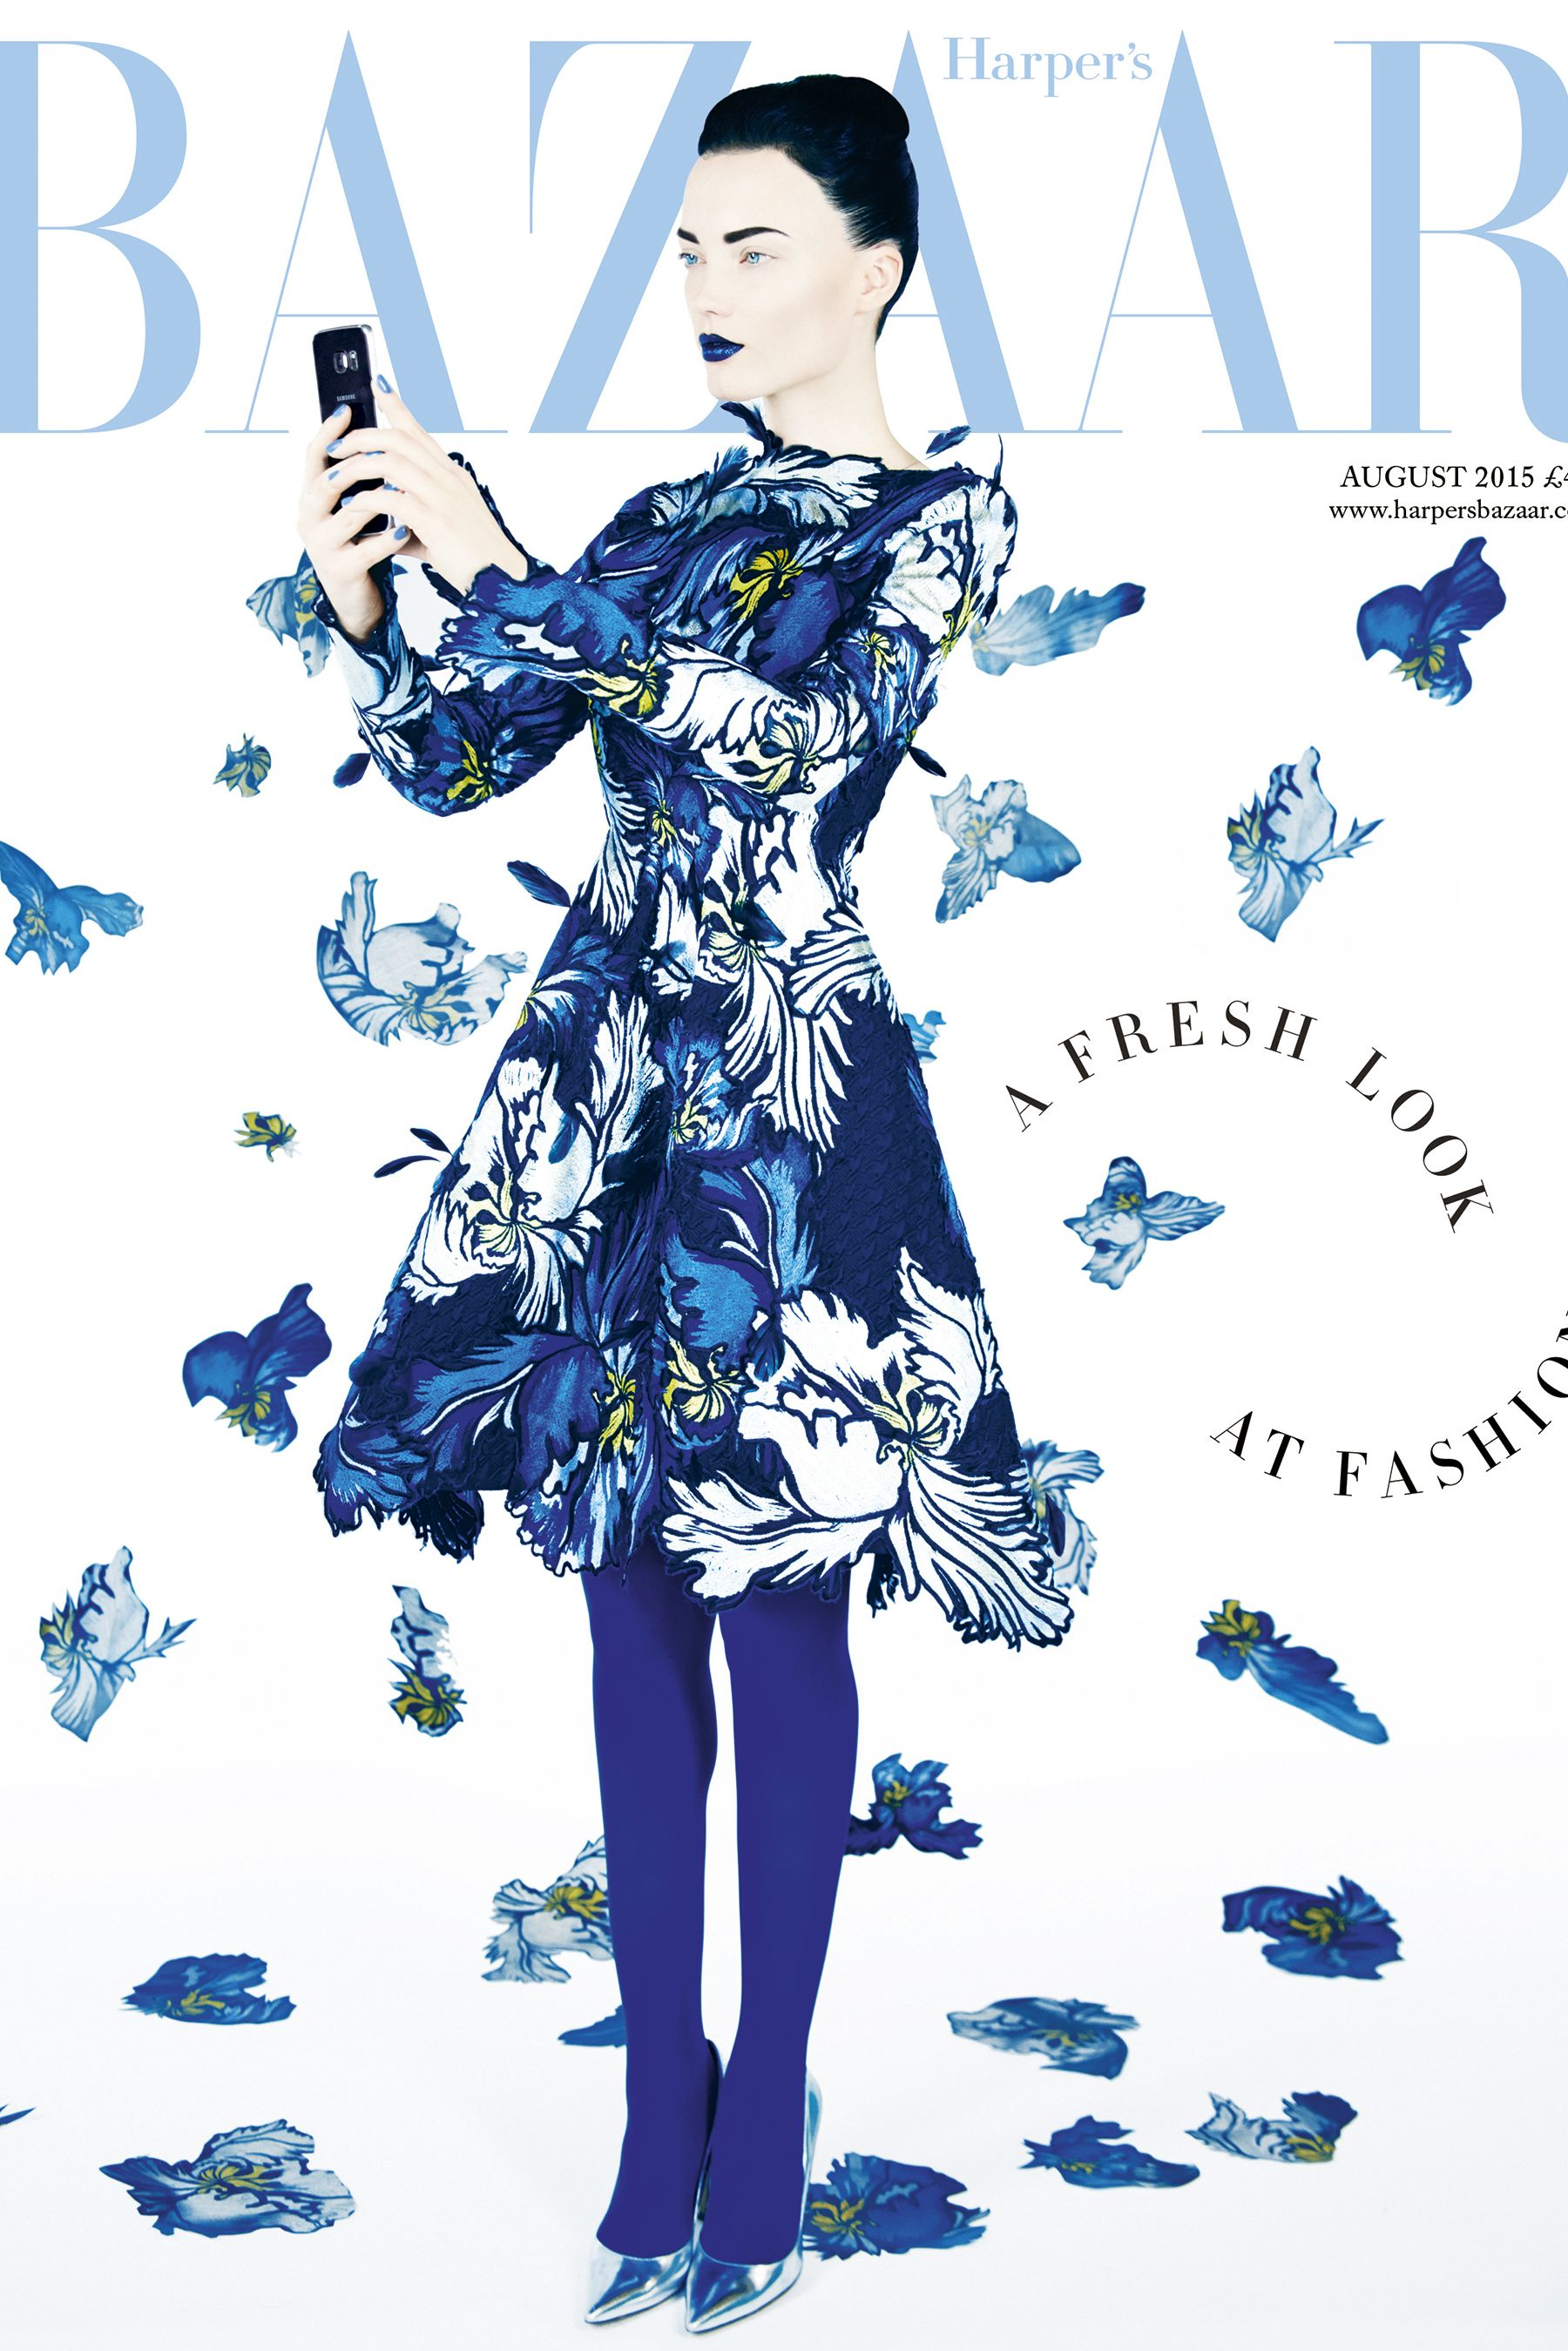 Harper's Bazaar August 2015 issue cover, powered by Samsung